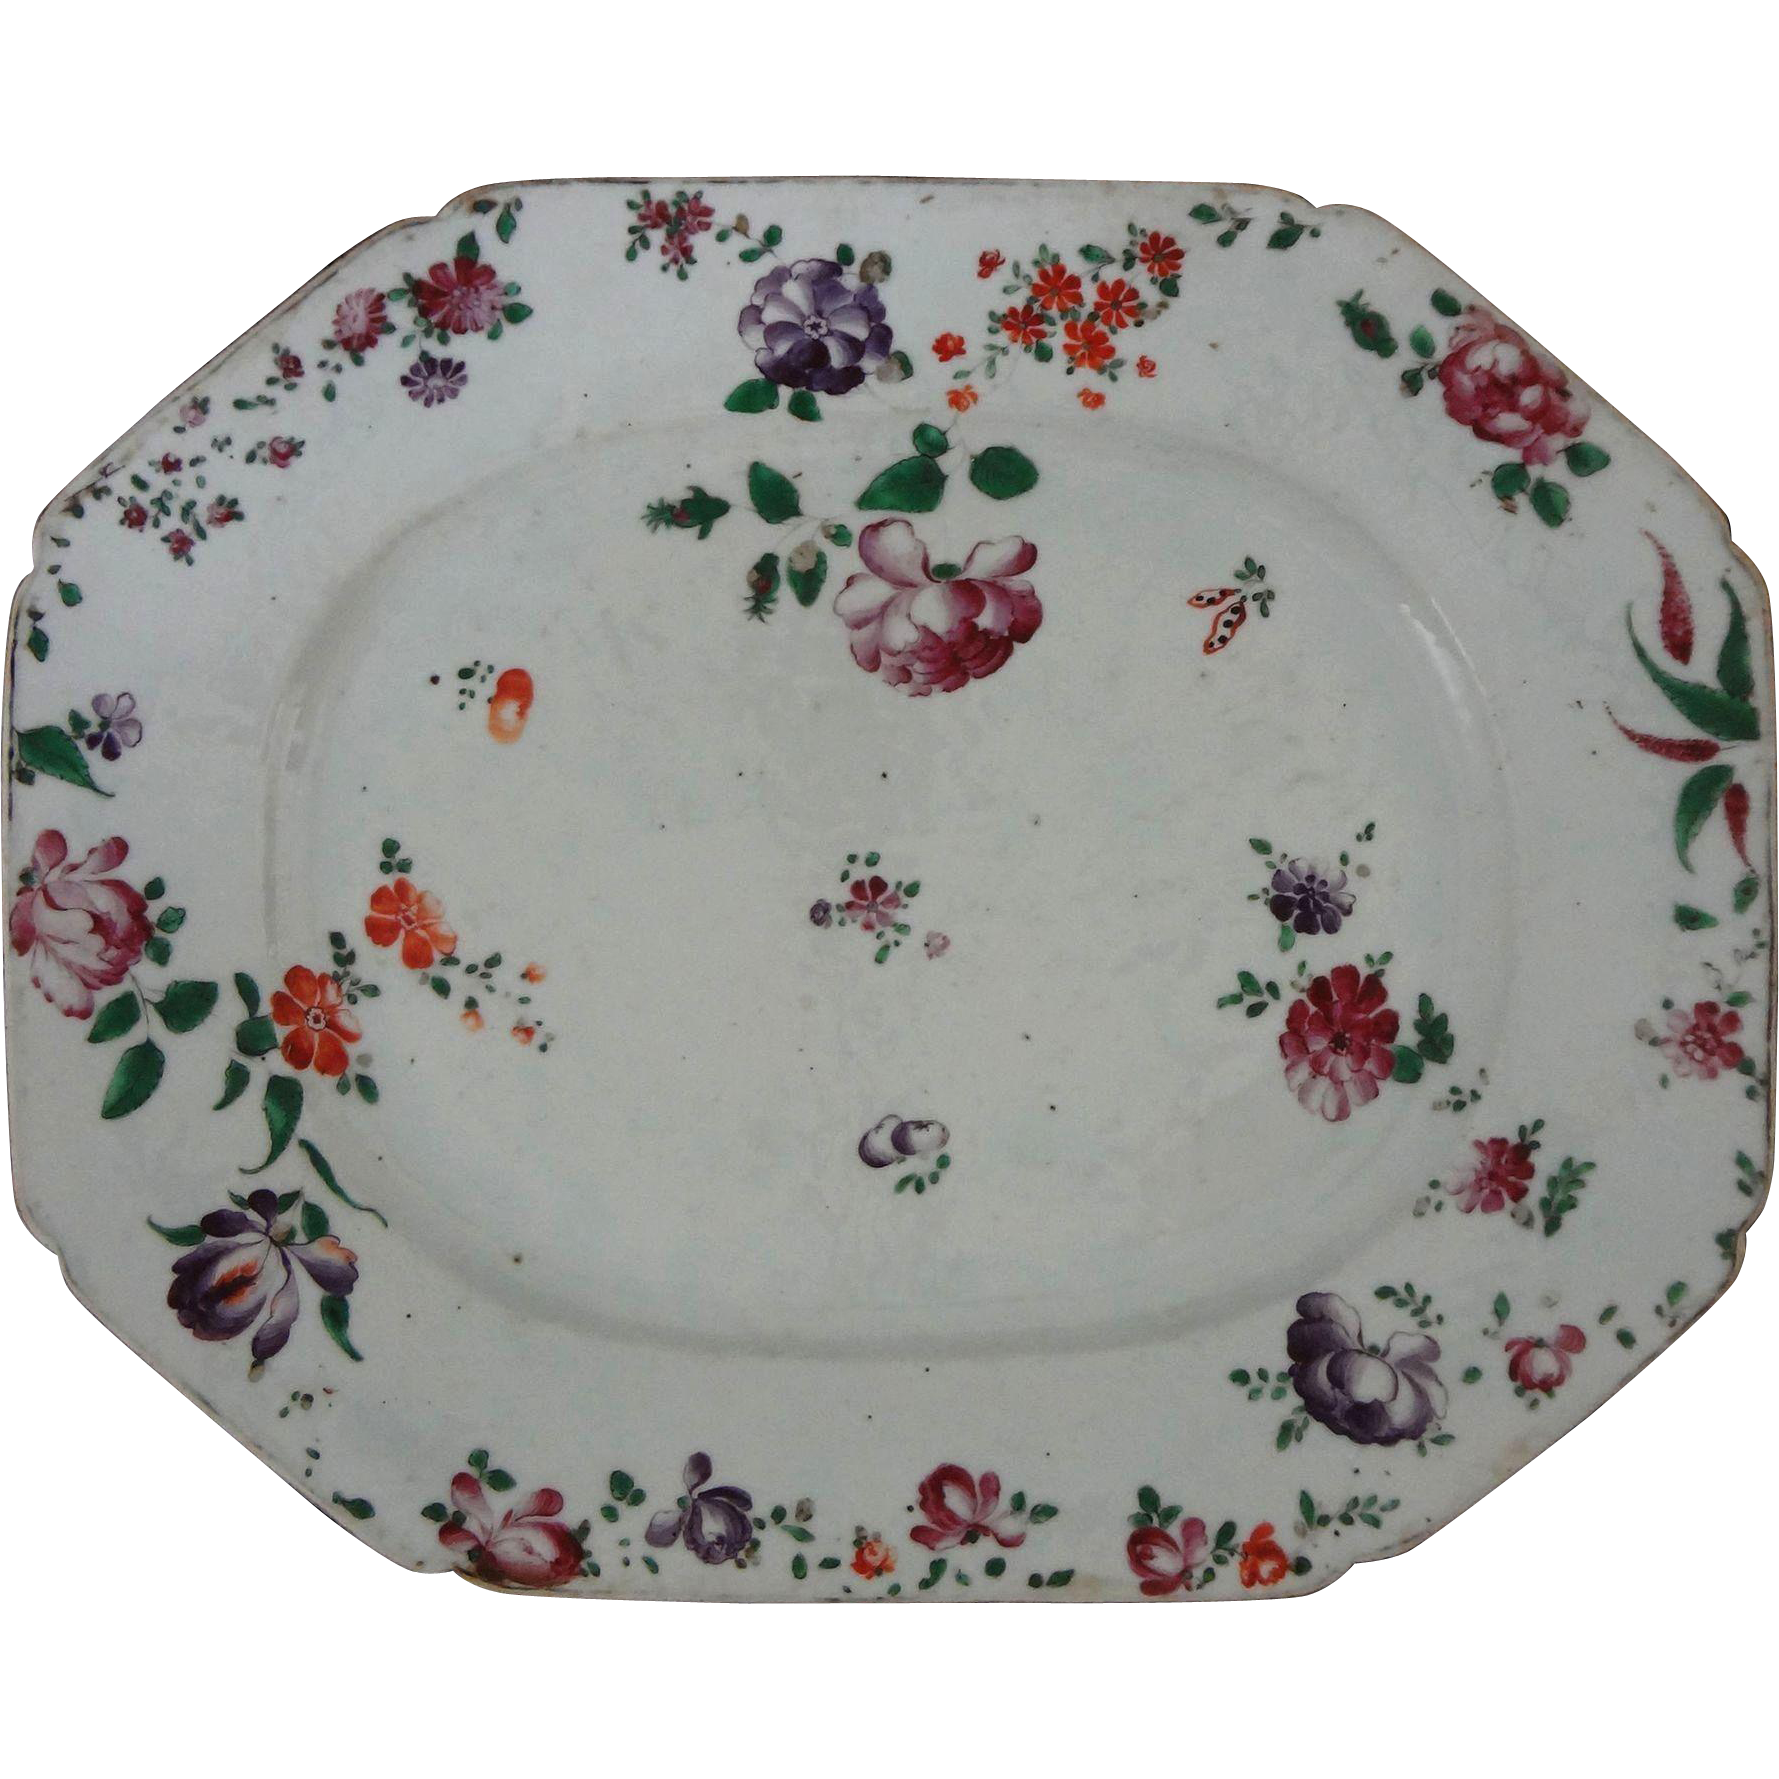 18th Century Famille Rose / Lowestoft Enamel on Porcelain Chinese Export Platter Antique Large